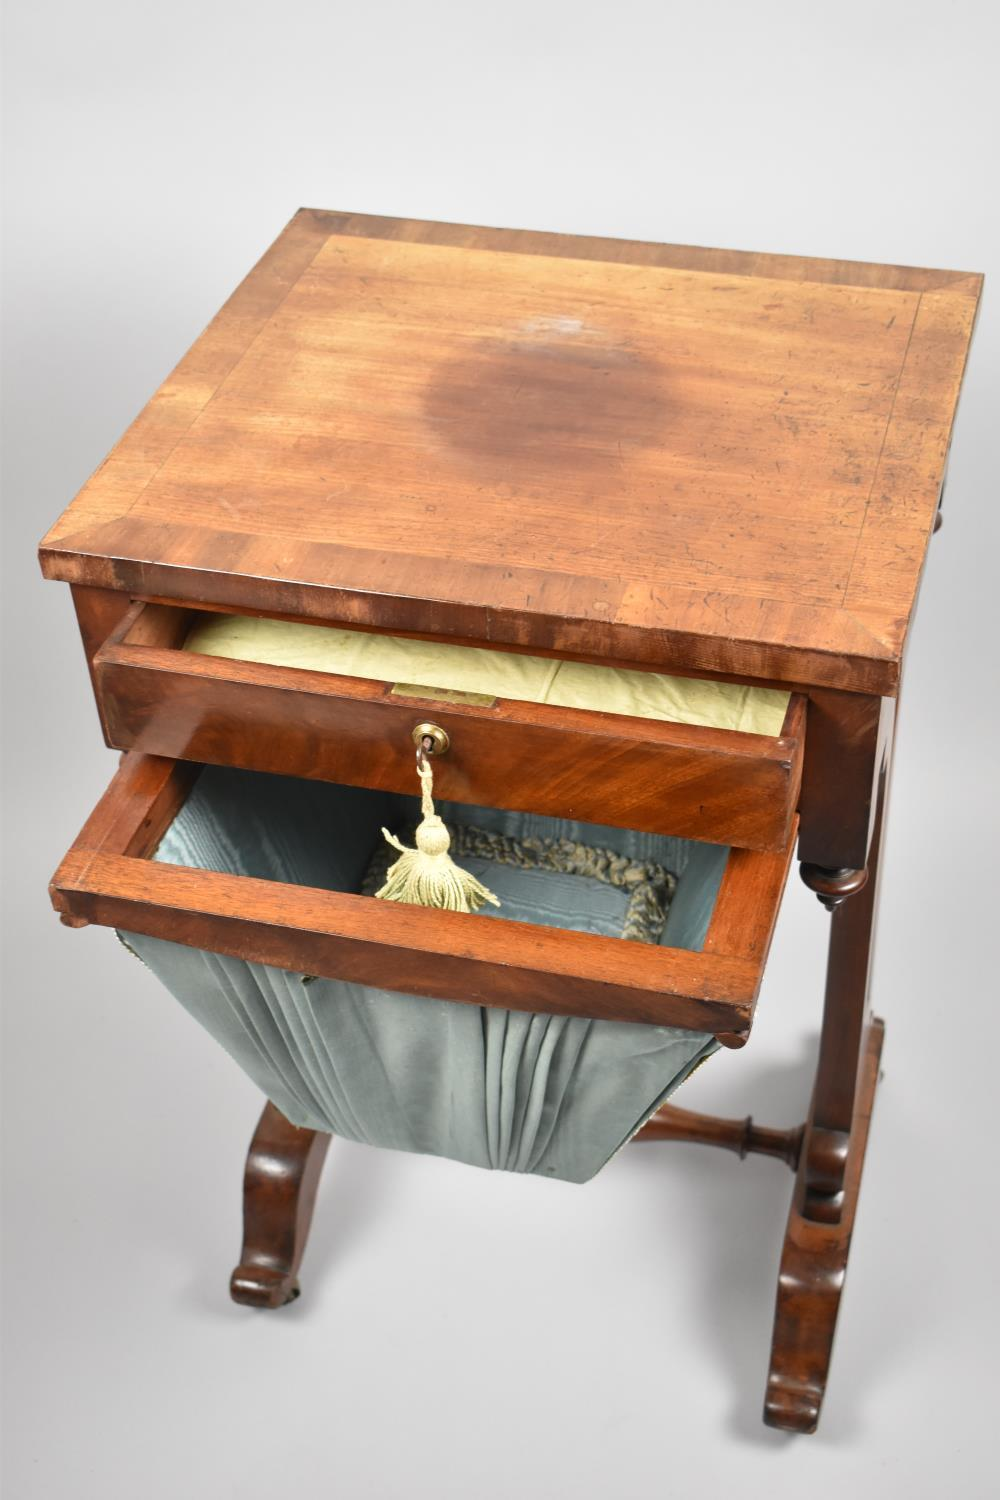 A Regency Mahogany Work Table with Single Top Drawer Over Wool Slide, Pierced Supports and Turned - Image 2 of 3